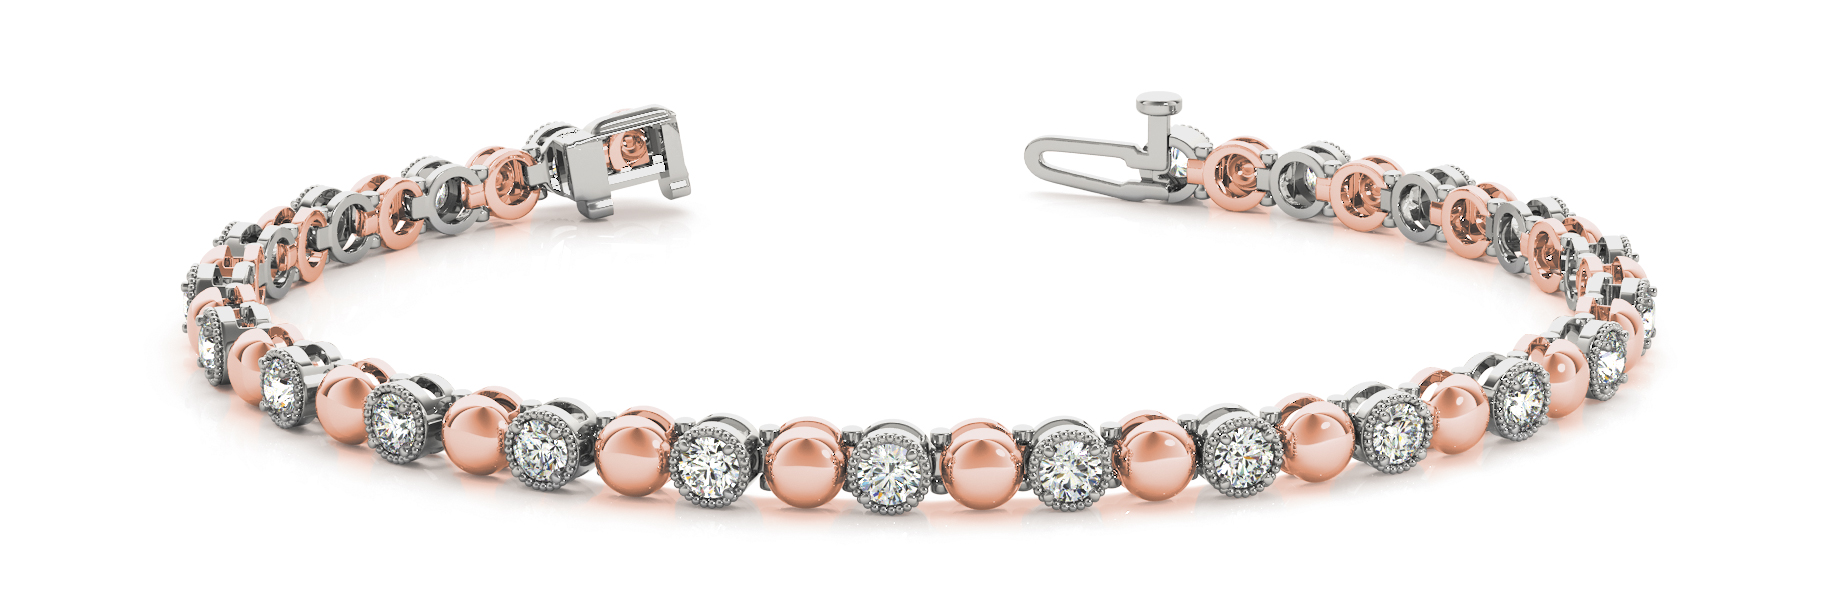 Round Diamond and Rose Gold Bracelet 0.66 Carat